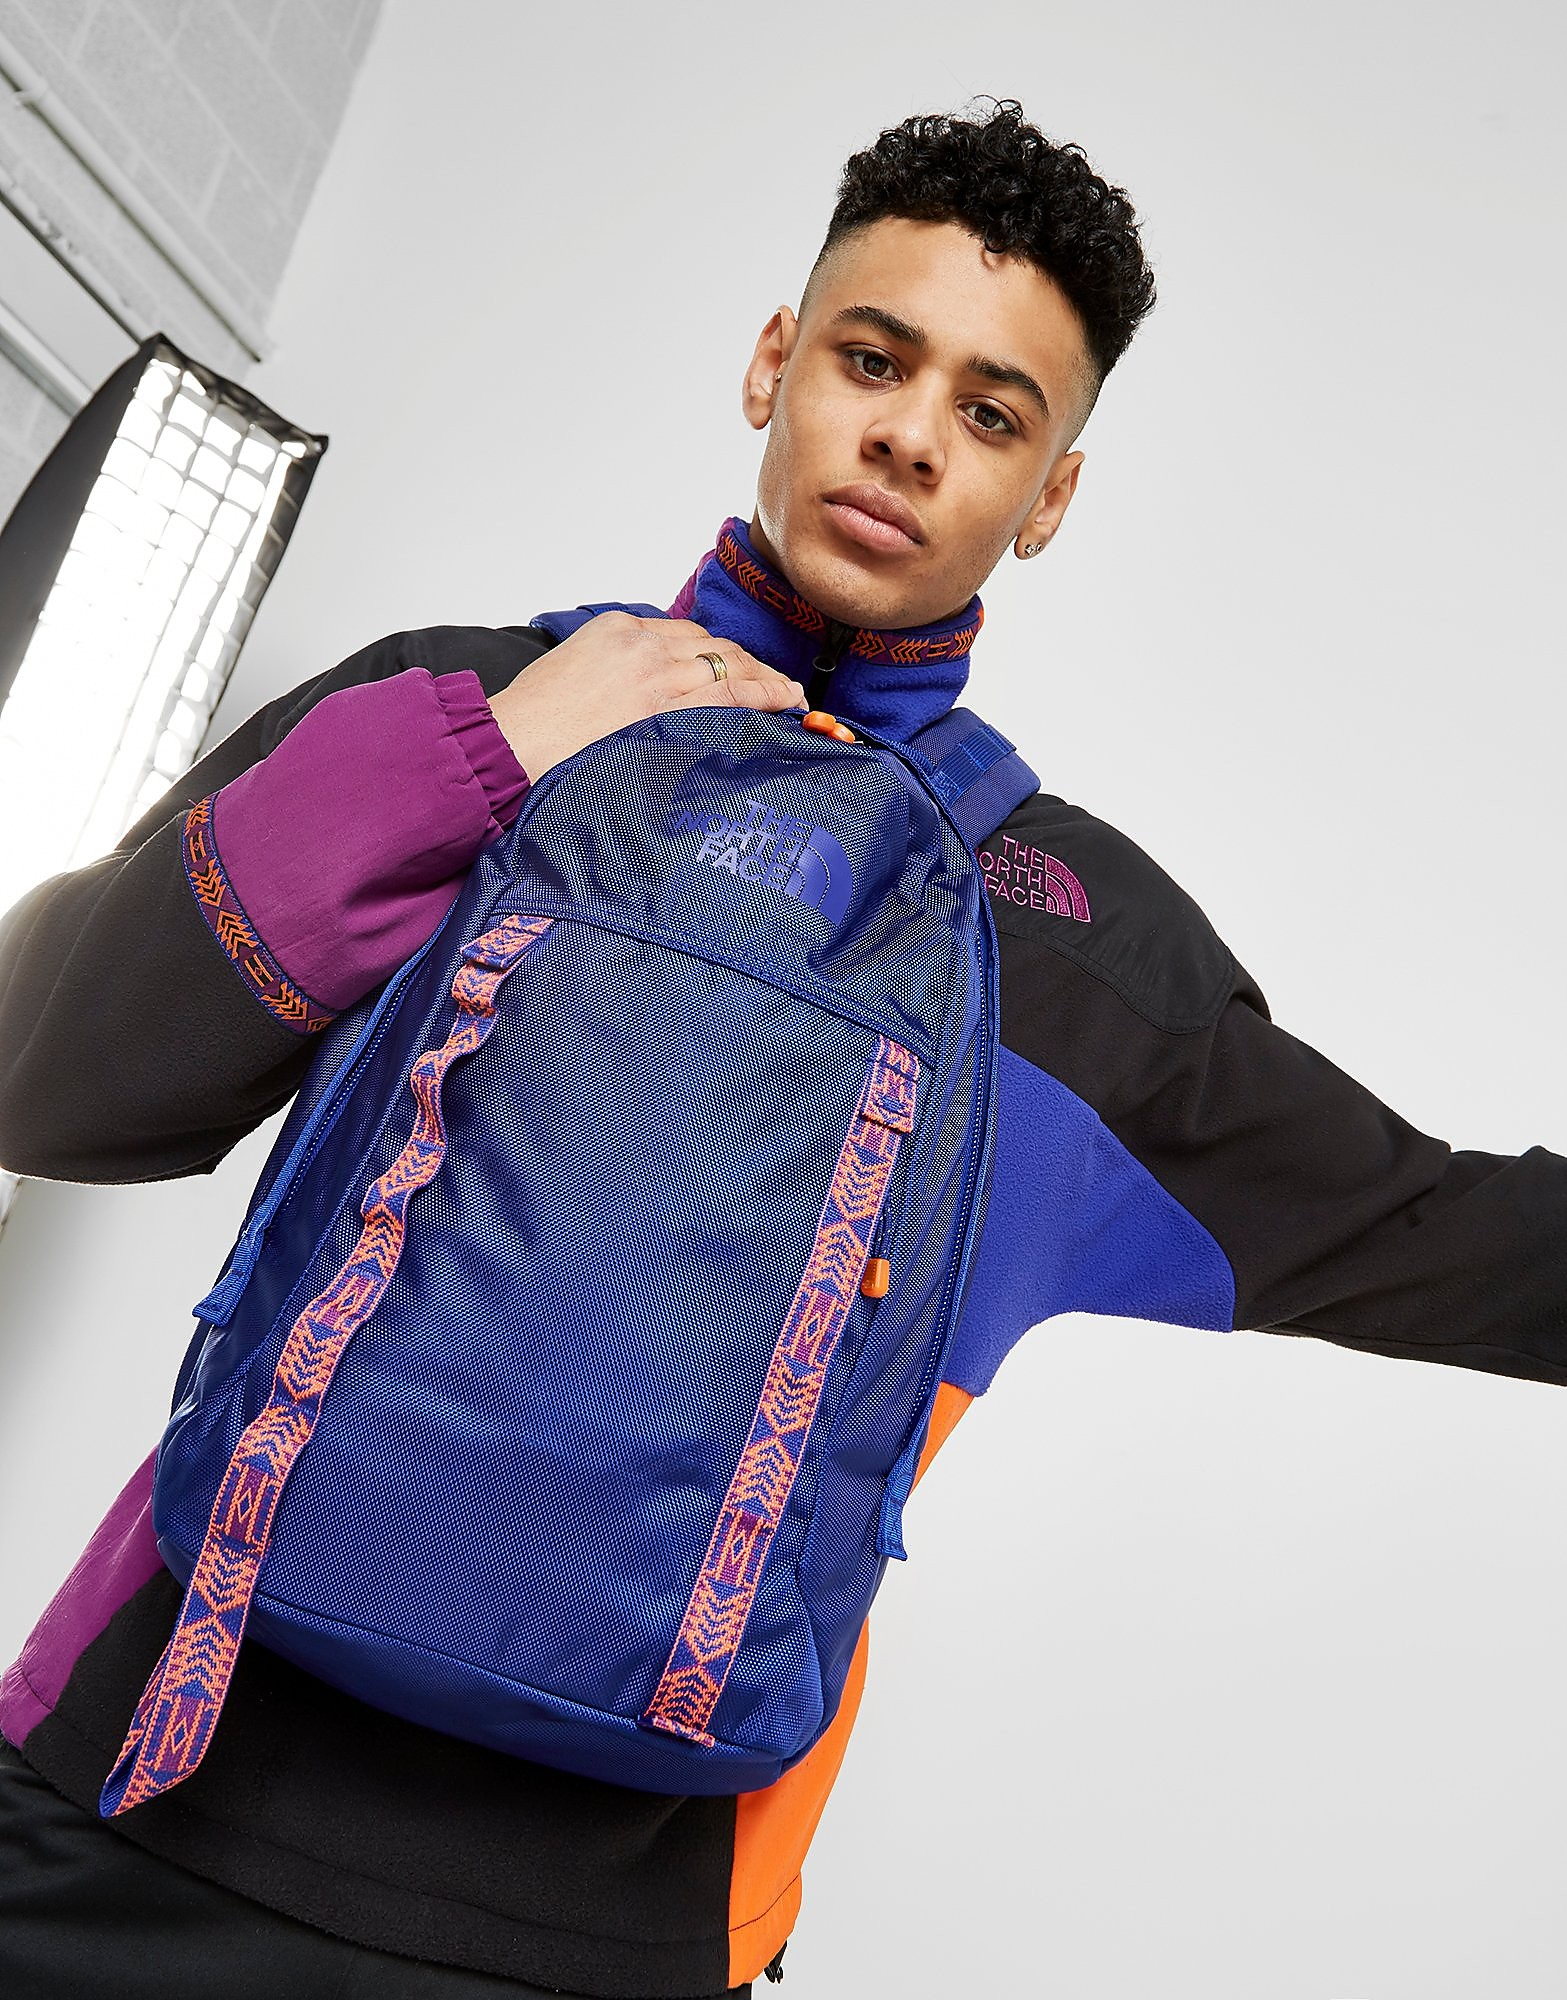 The North Face laptoptas blauw, rood en wit